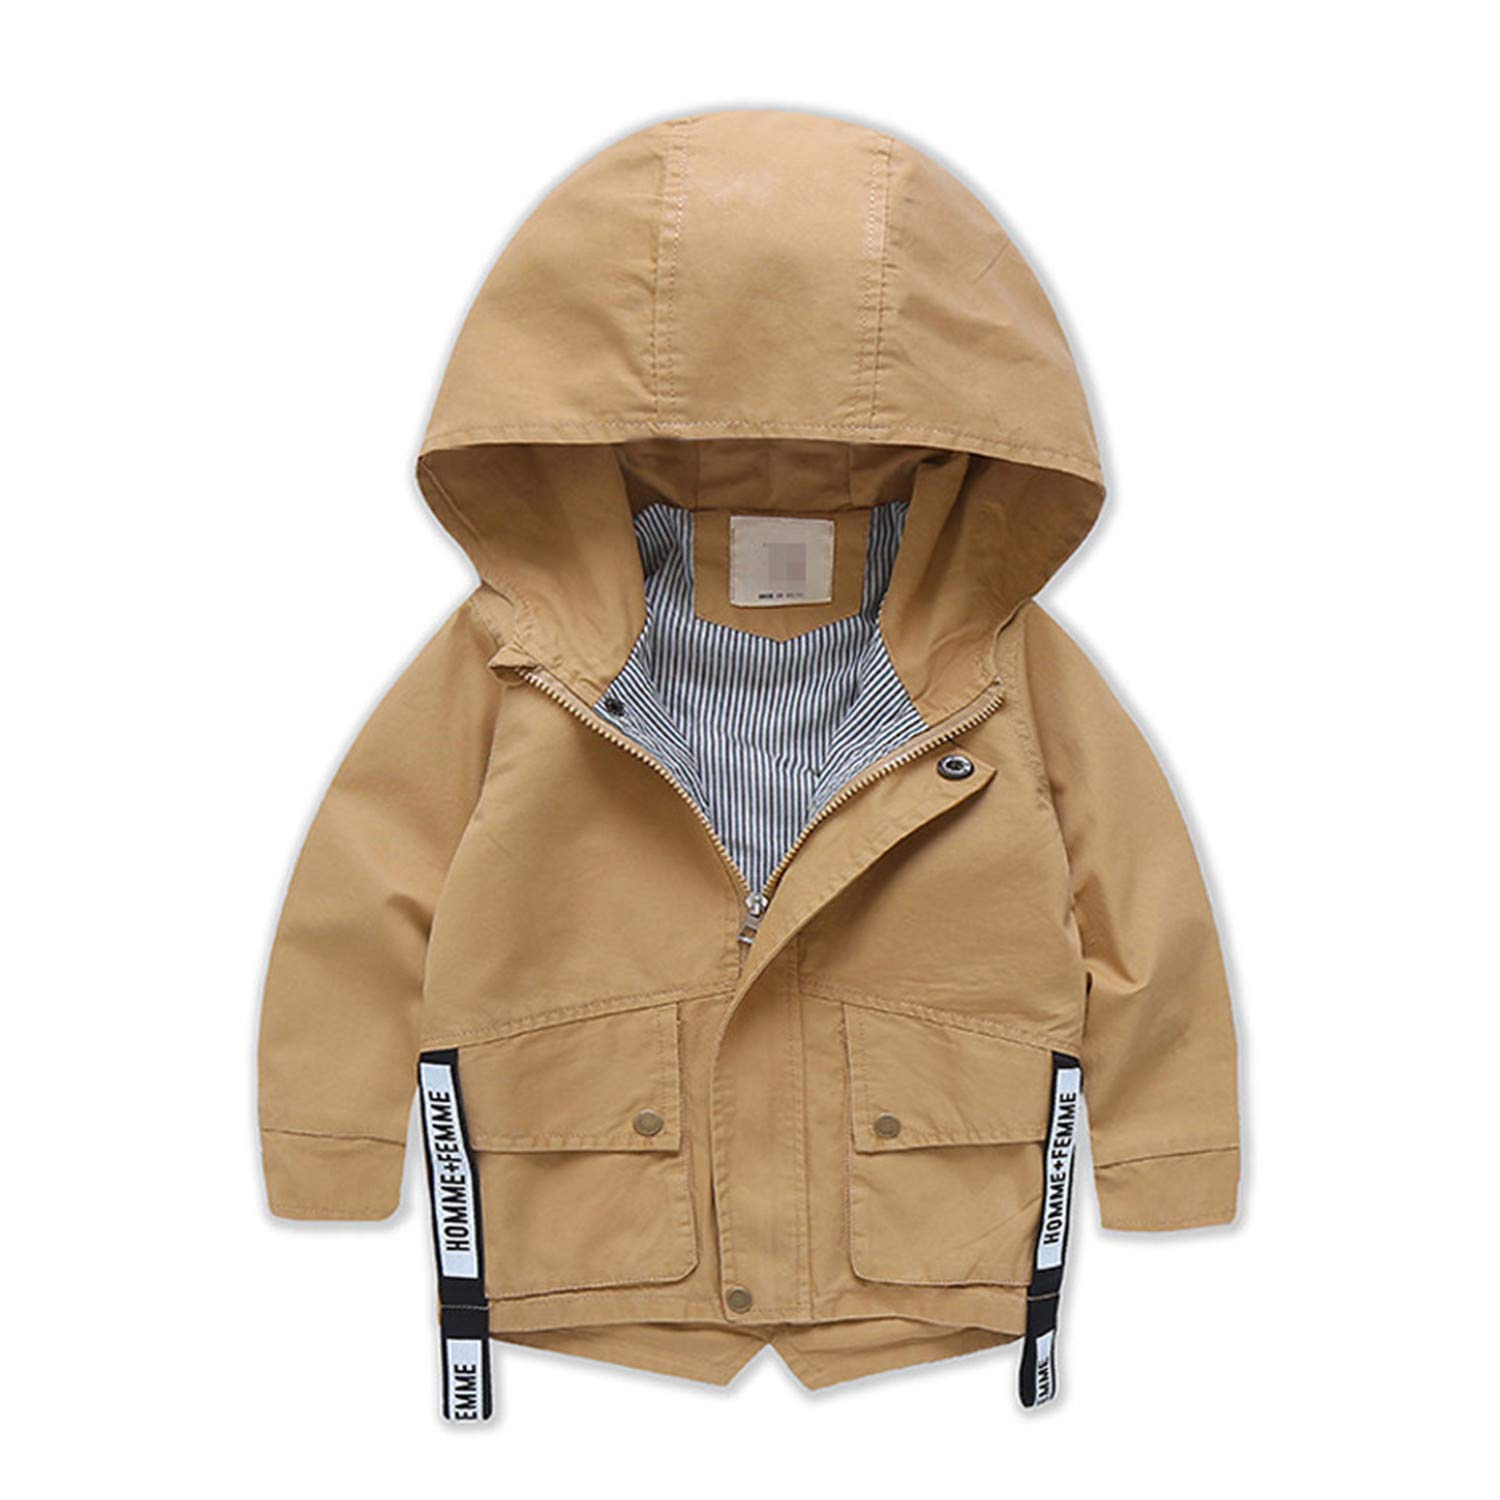 c9da11650 Get Quotations · Evan Fordd New Long Jackets for Boys Hooded Baby Boy  Windbreaker Boys Jackets and Coats